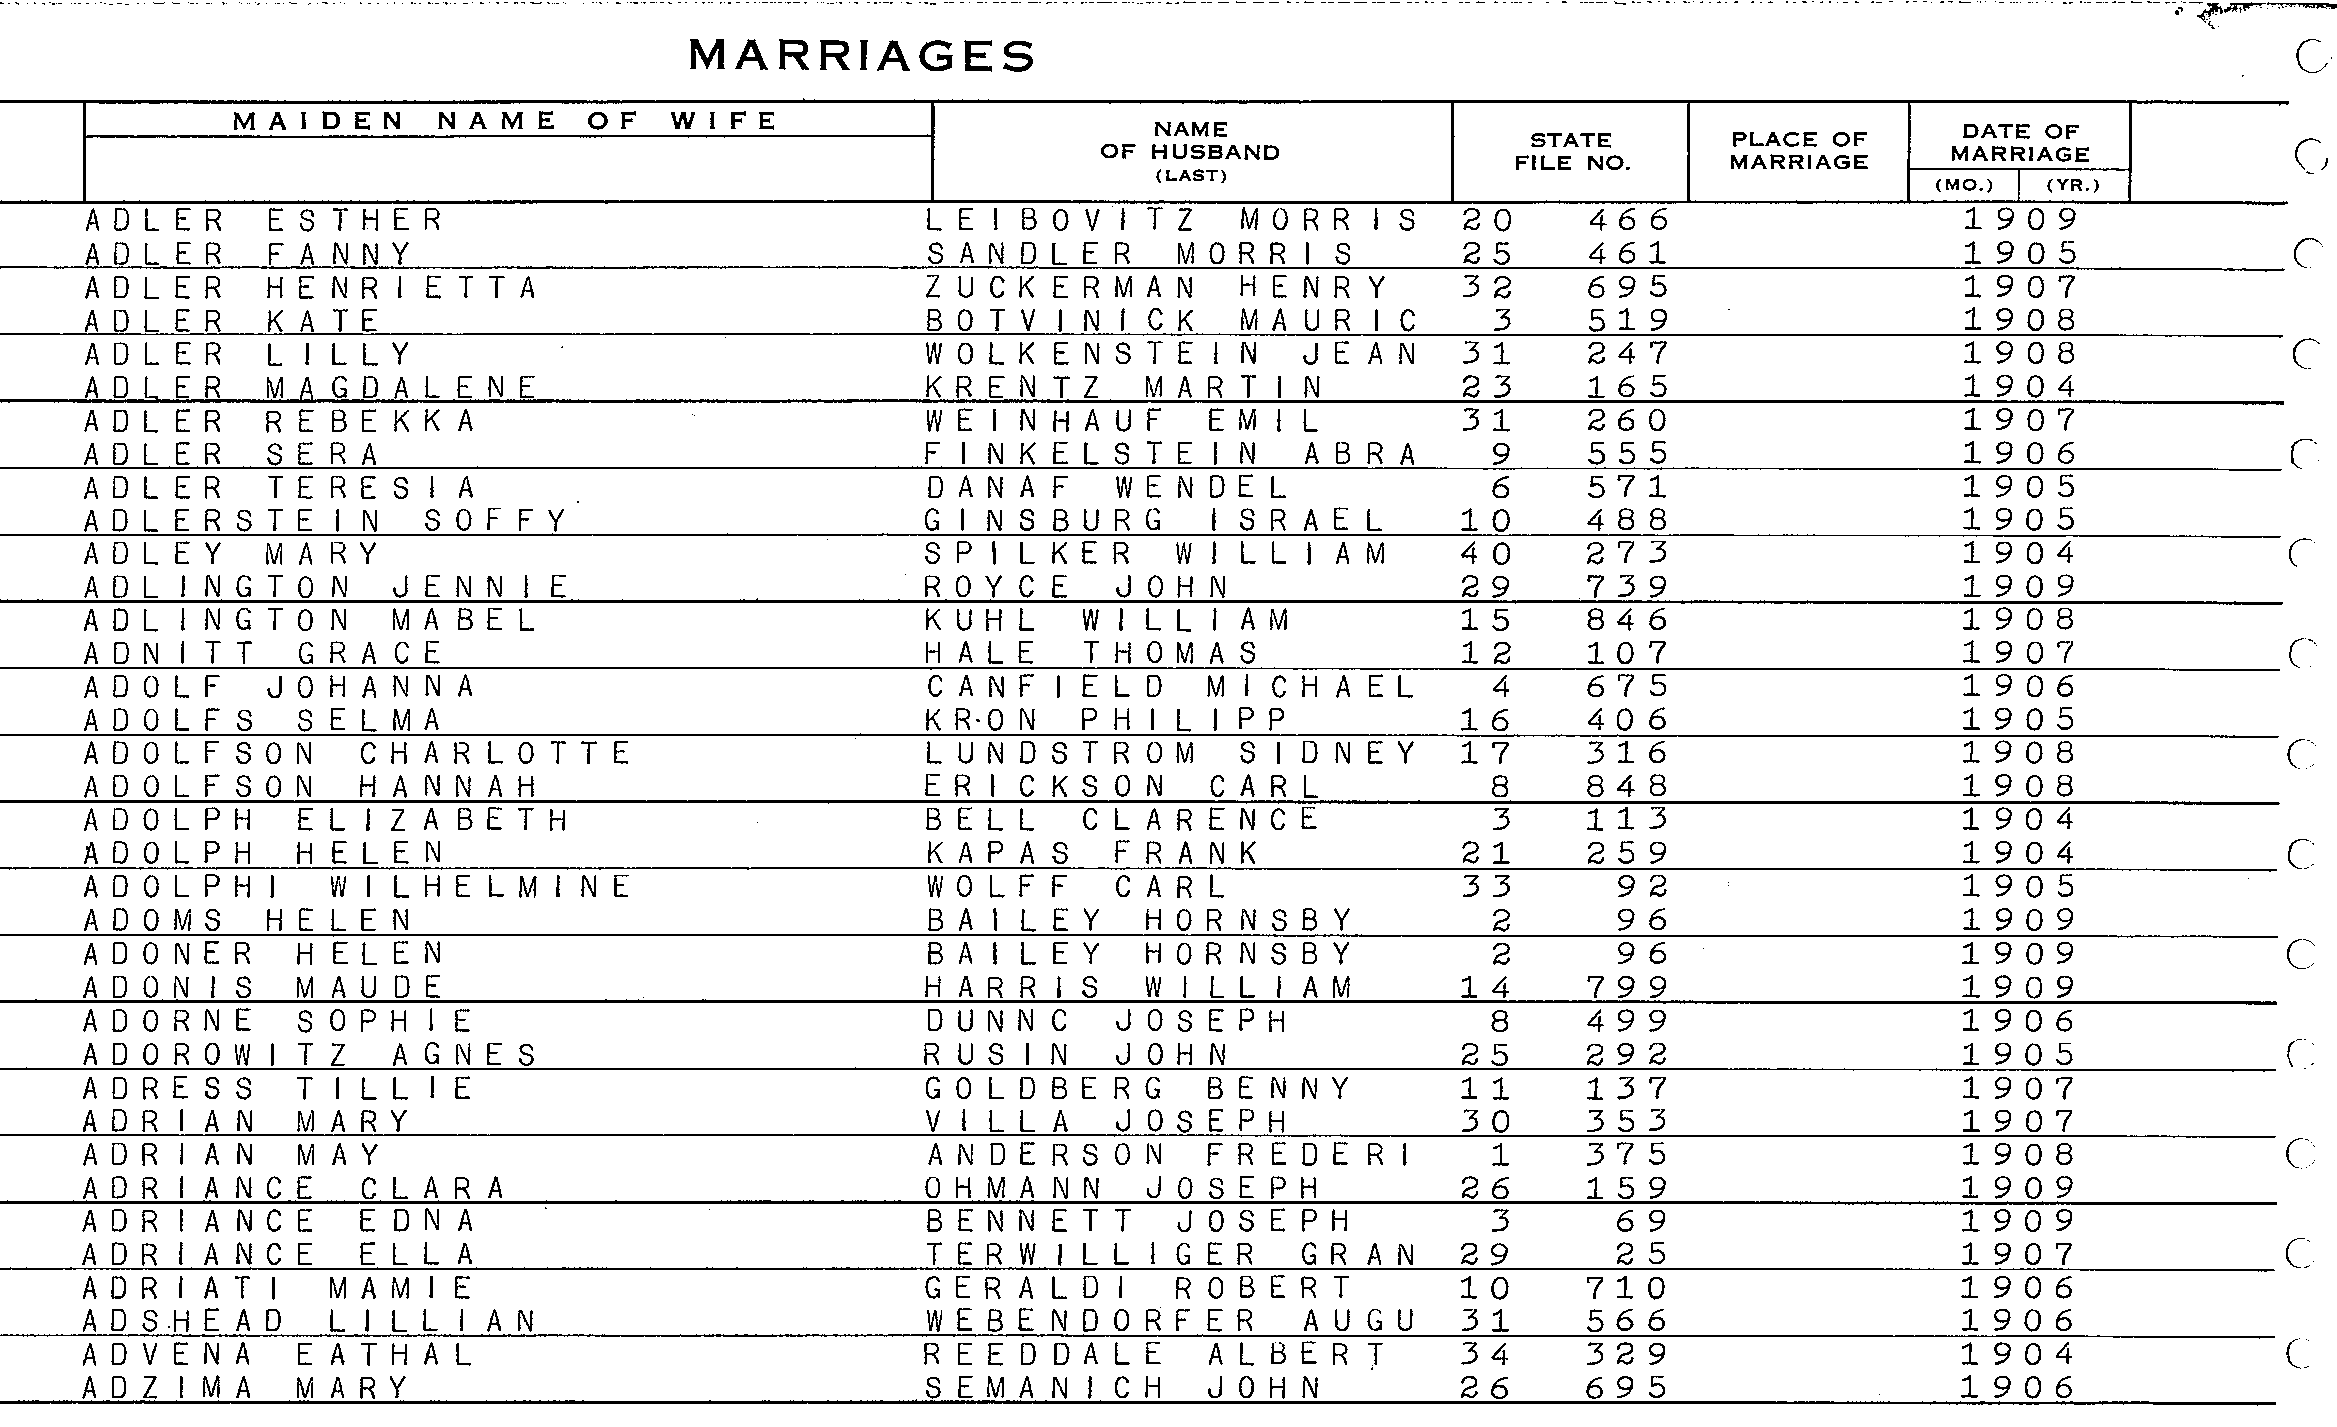 New Jersey Birth, Marriage, and Death Indices, 1901-1903 and